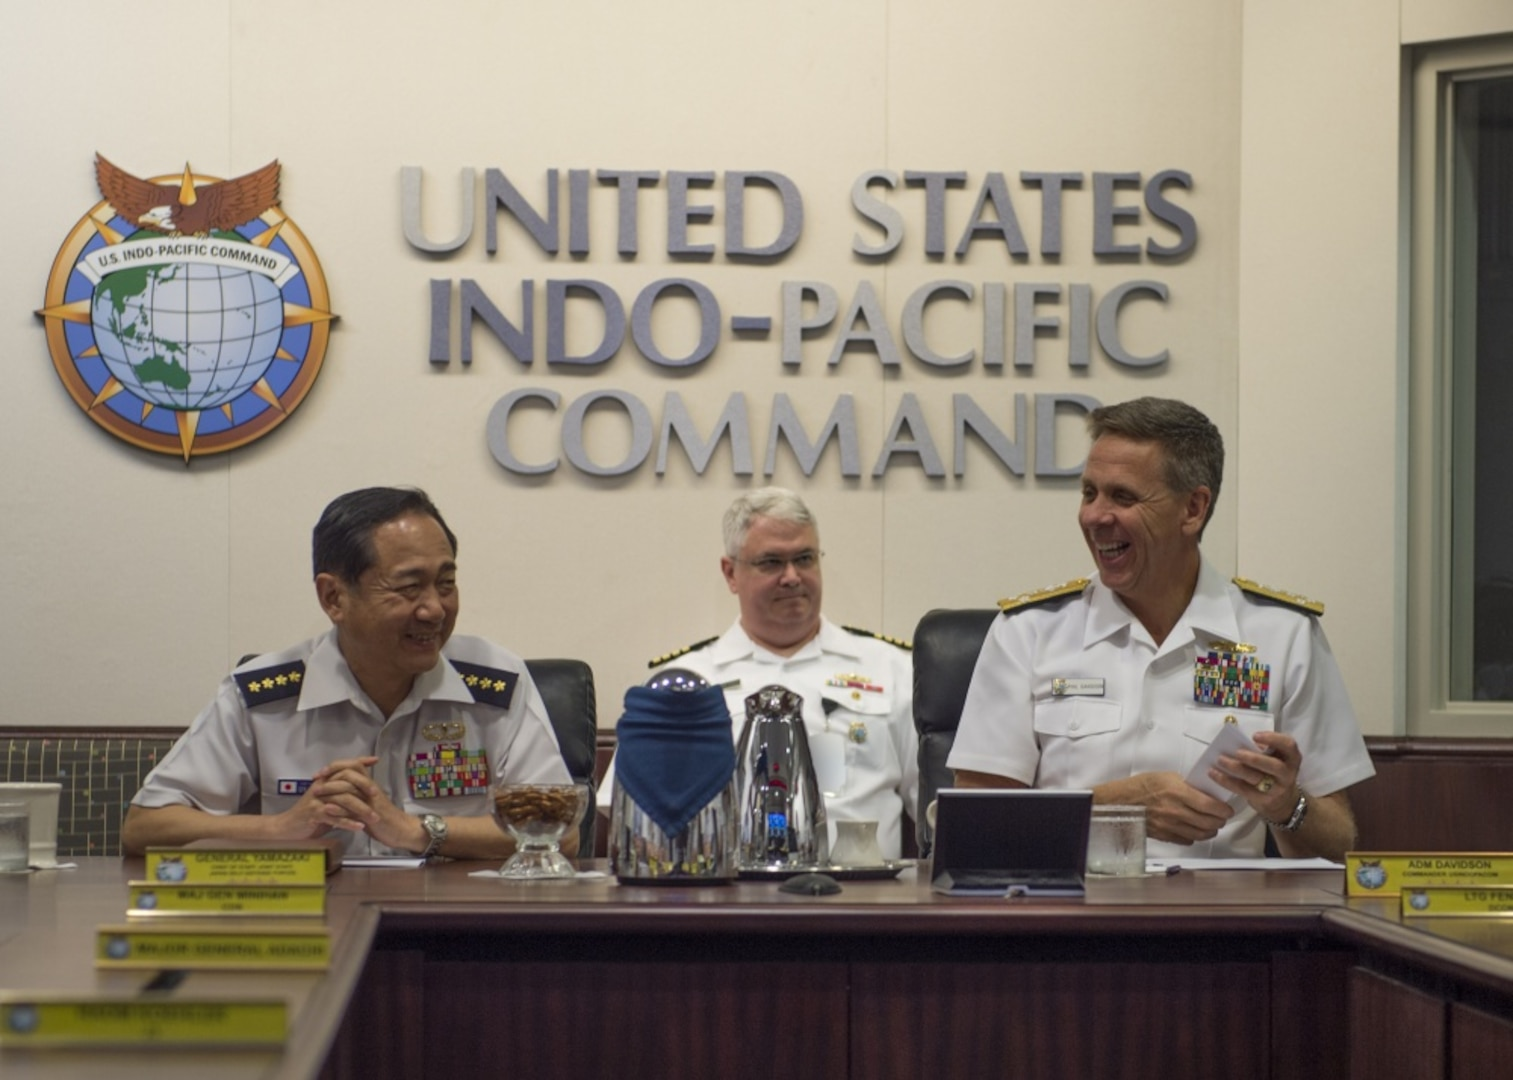 190424-N-WY954-085 CAMP SMITH (April 24, 2019)-Commander, U.S. Indo-Pacific Command (USINDOPACOM), Adm. Phil Davidson, meets with the Chief of Staff, Joint Staff, of Japan Self-Defense Forces (JSDF), Gen. Koji Yamazaki, at USINDOPACOM headquarters. This is Yamazaki's first time visiting USINDOPACOM since assuming his new role as the 6th Chief of Staff, Joint Staff of the JSDF. The visit demonstrates the U.S. and Japan alliance as the cornerstone for peace and security in the region, and how together, they are committed to ensuring a free and open Indo-Pacific. (U.S. Navy illustration by Mass Communication Specialist 1st Class Robin W. Peak)